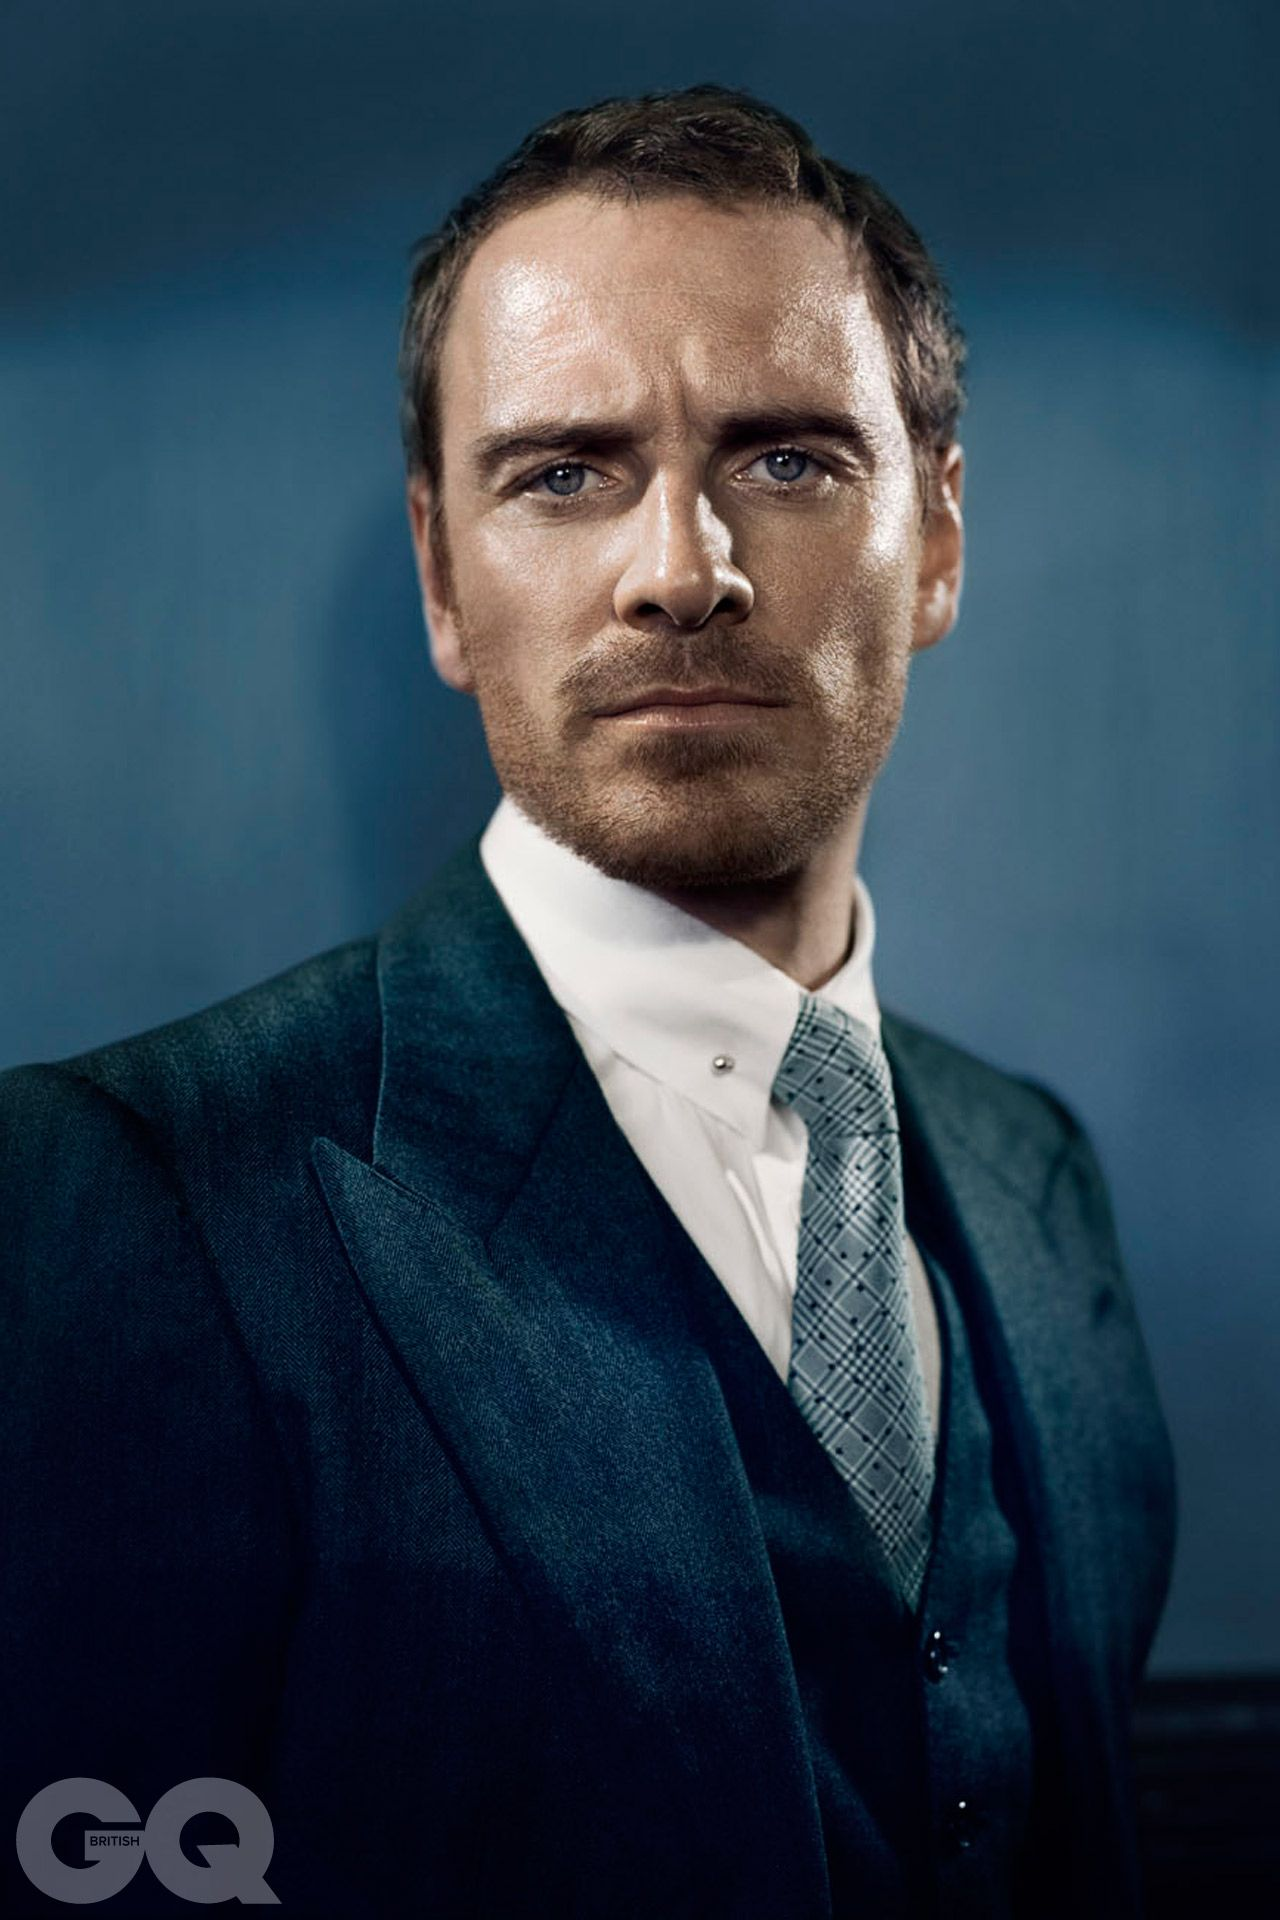 Michael Fassbender - Shame interview on Shame | British GQ Michael Fassbender